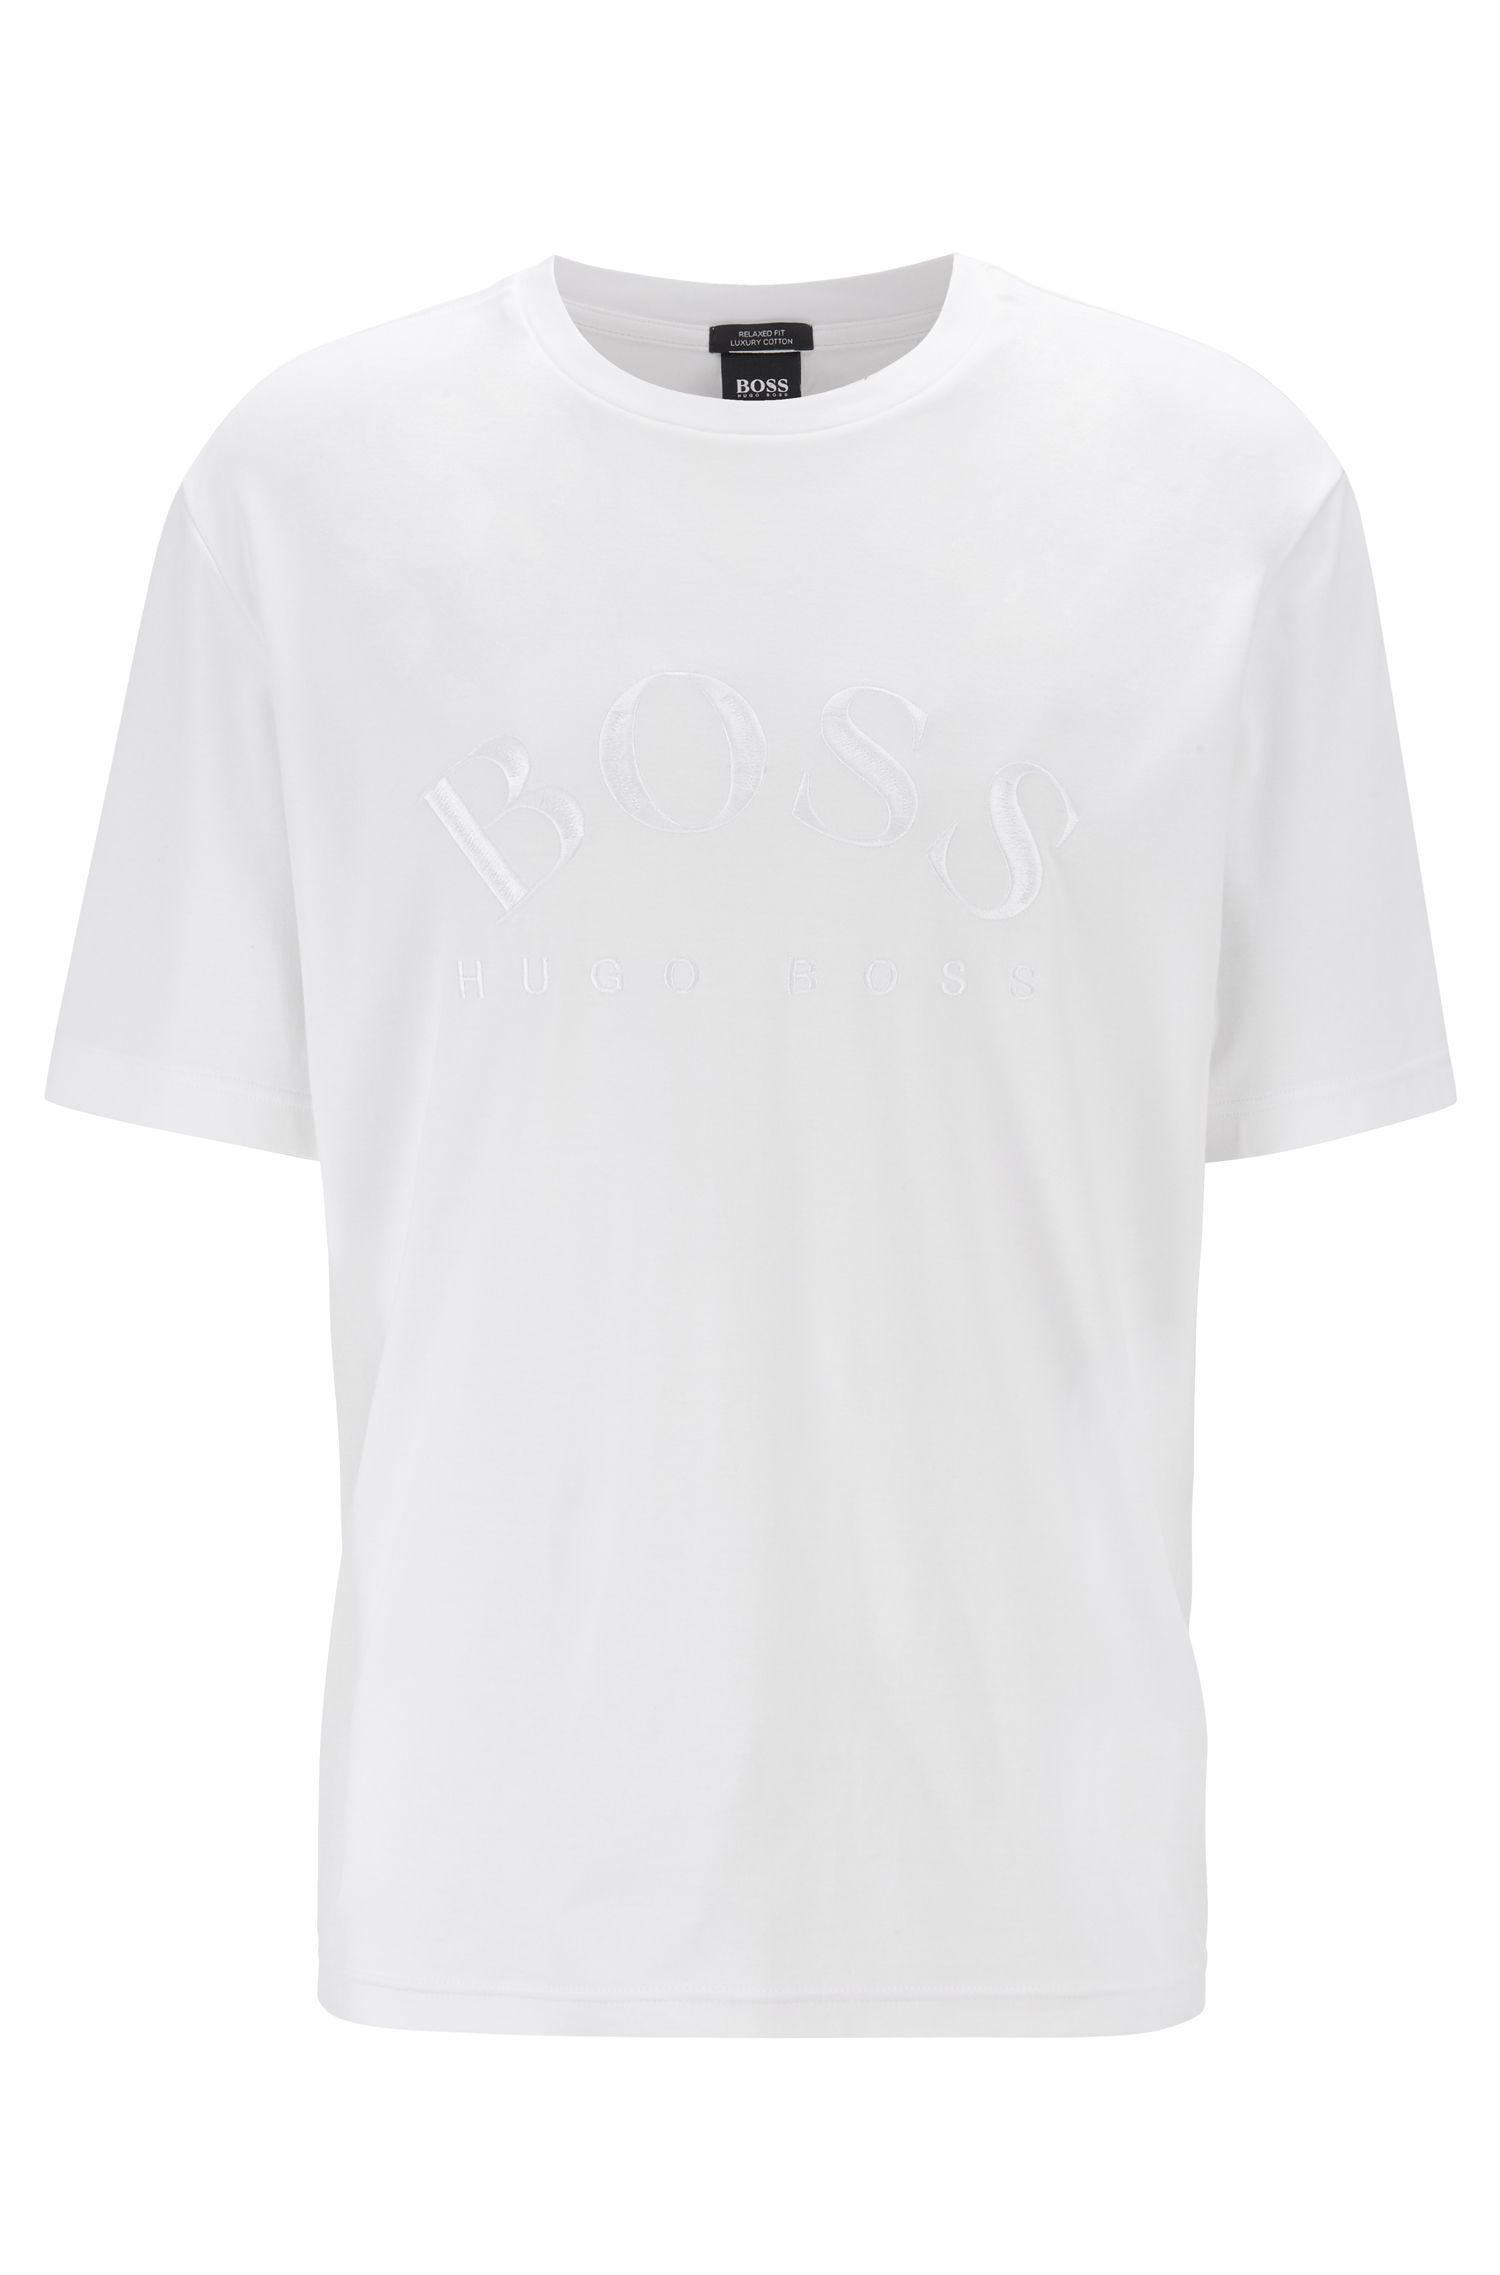 Relaxed-fit T-shirt in interlock cotton with tonal logo, White